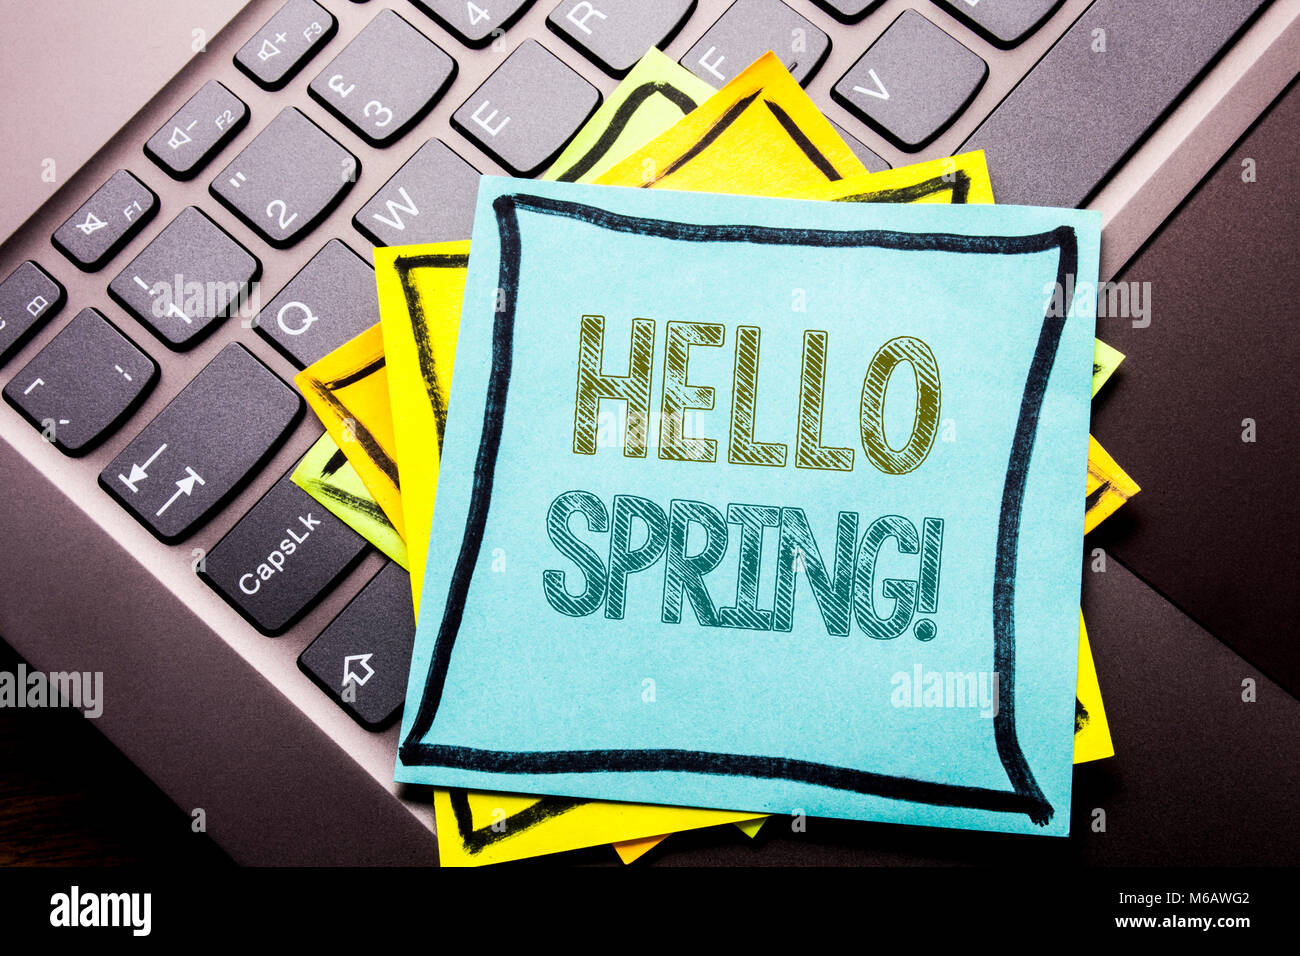 Conceptual hand writing text caption inspiration showing Hello Spring!. Business concept for Summer Time Welcoming - Stock Image